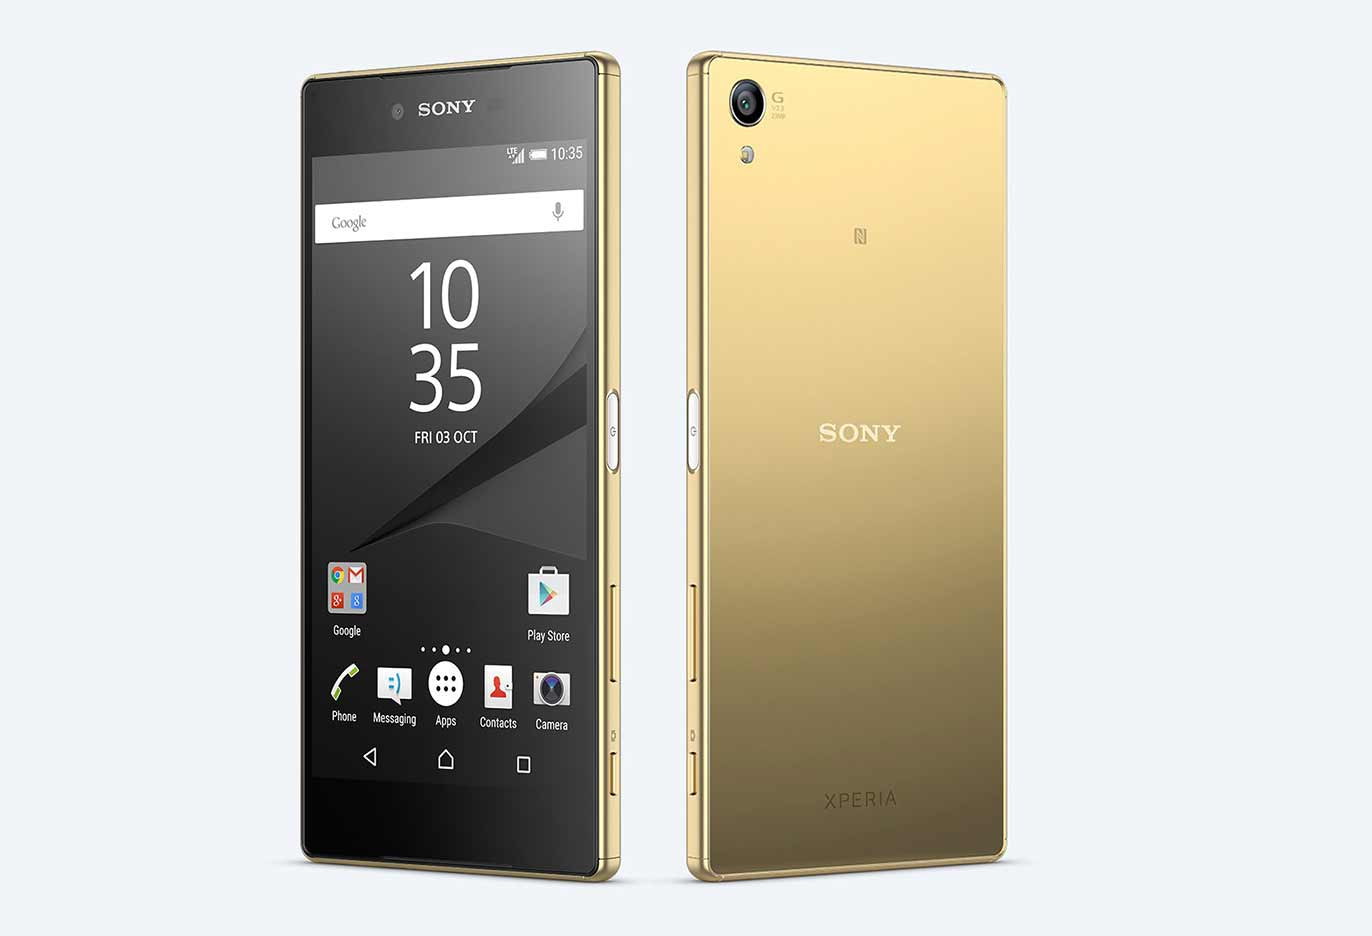 Sony xperia z specifications and price in india